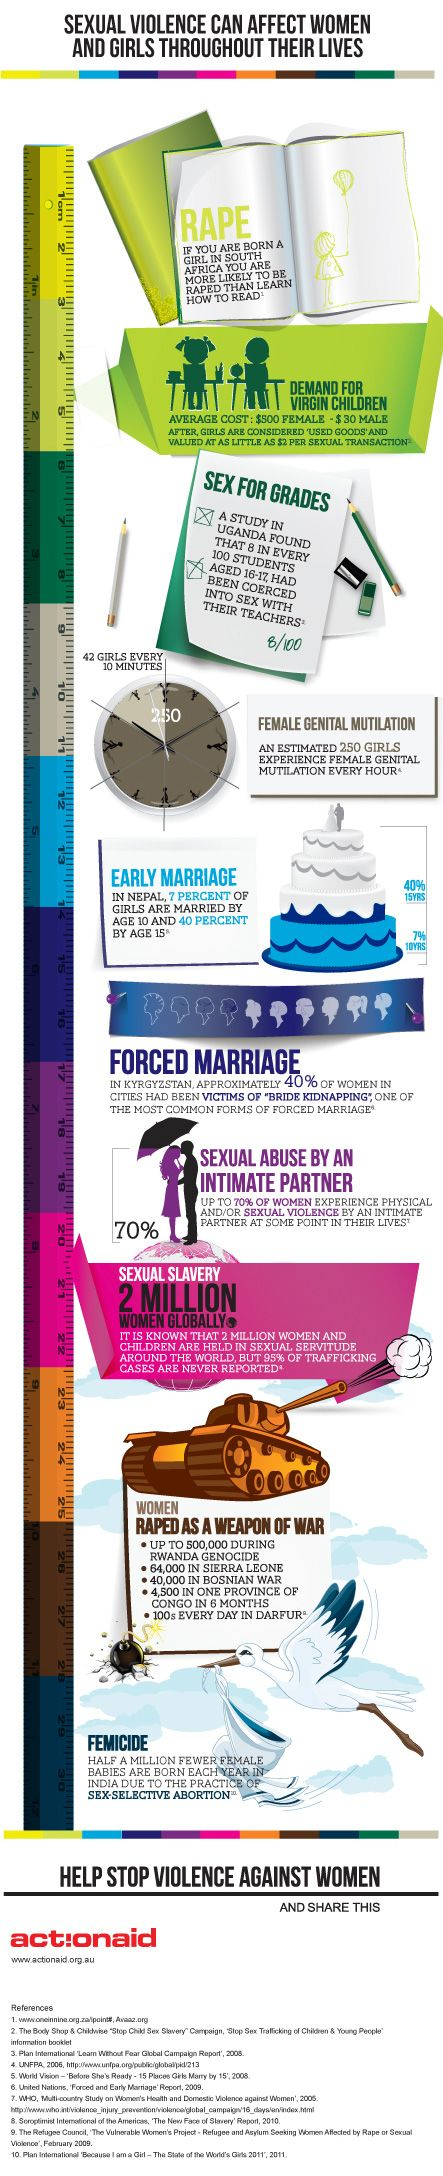 Sexual Violence Against Women – The hard truths [Infographic]:  Internet Site, Hard Truths,  Website, Human Sexual, Human Rights, Web Site, Affection Women, Infographic, Sexual Violence